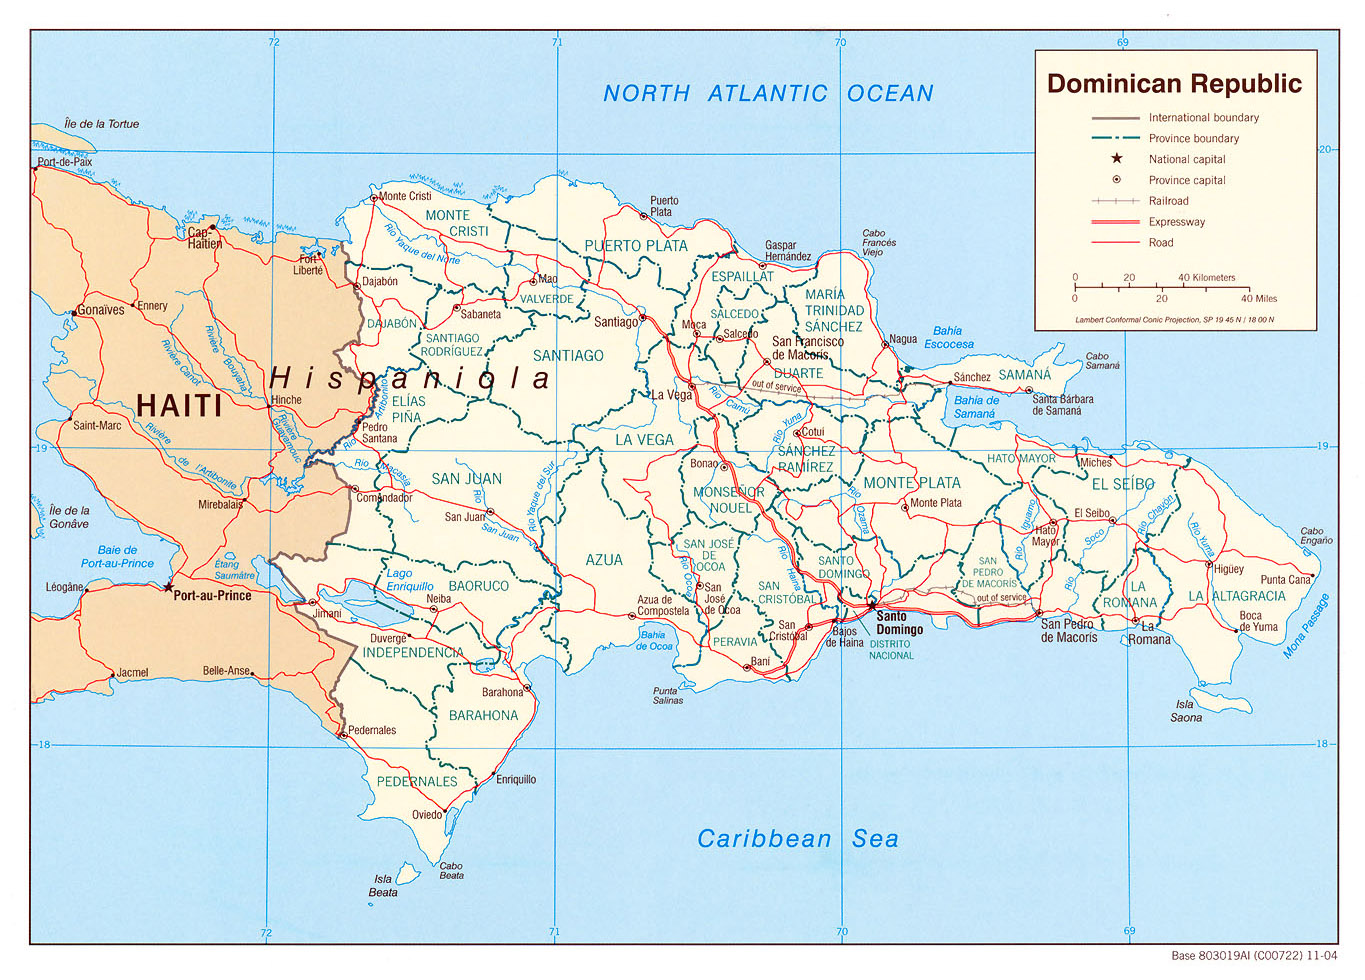 Detailed Political And Administrative Map Of Dominican Republic - Dominican republic major cities map